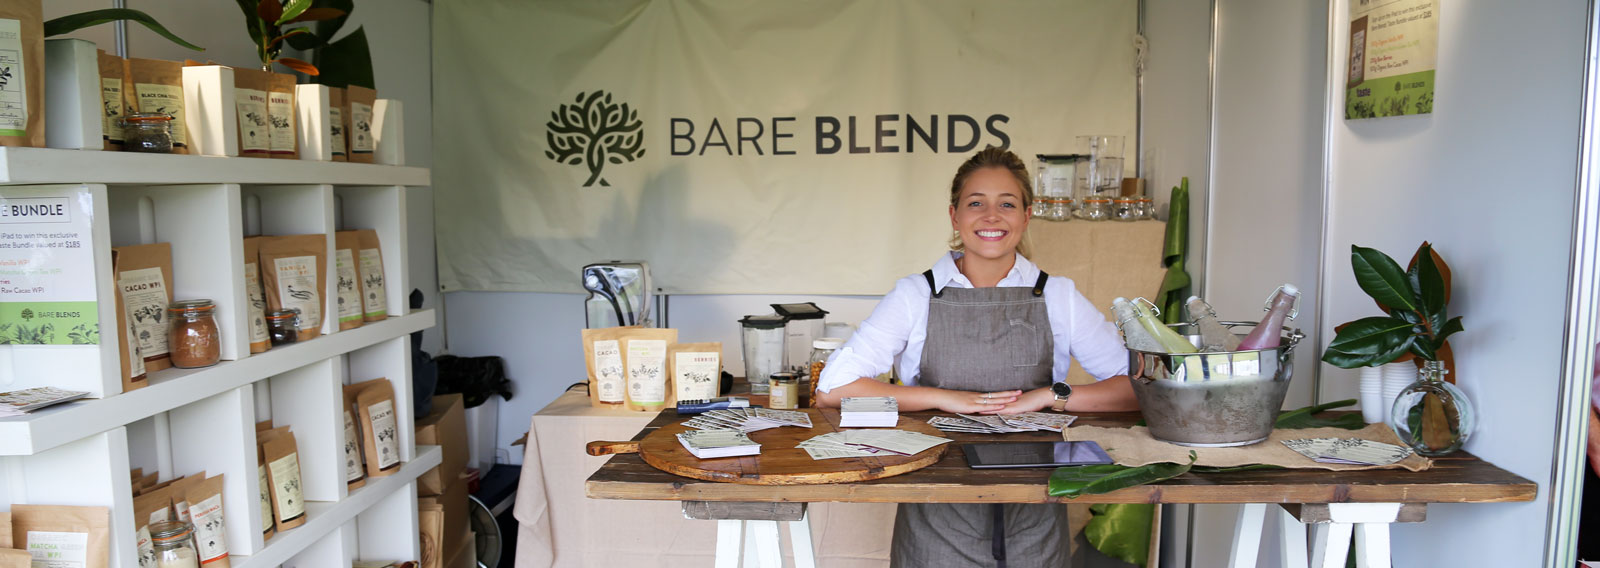 bare blends store